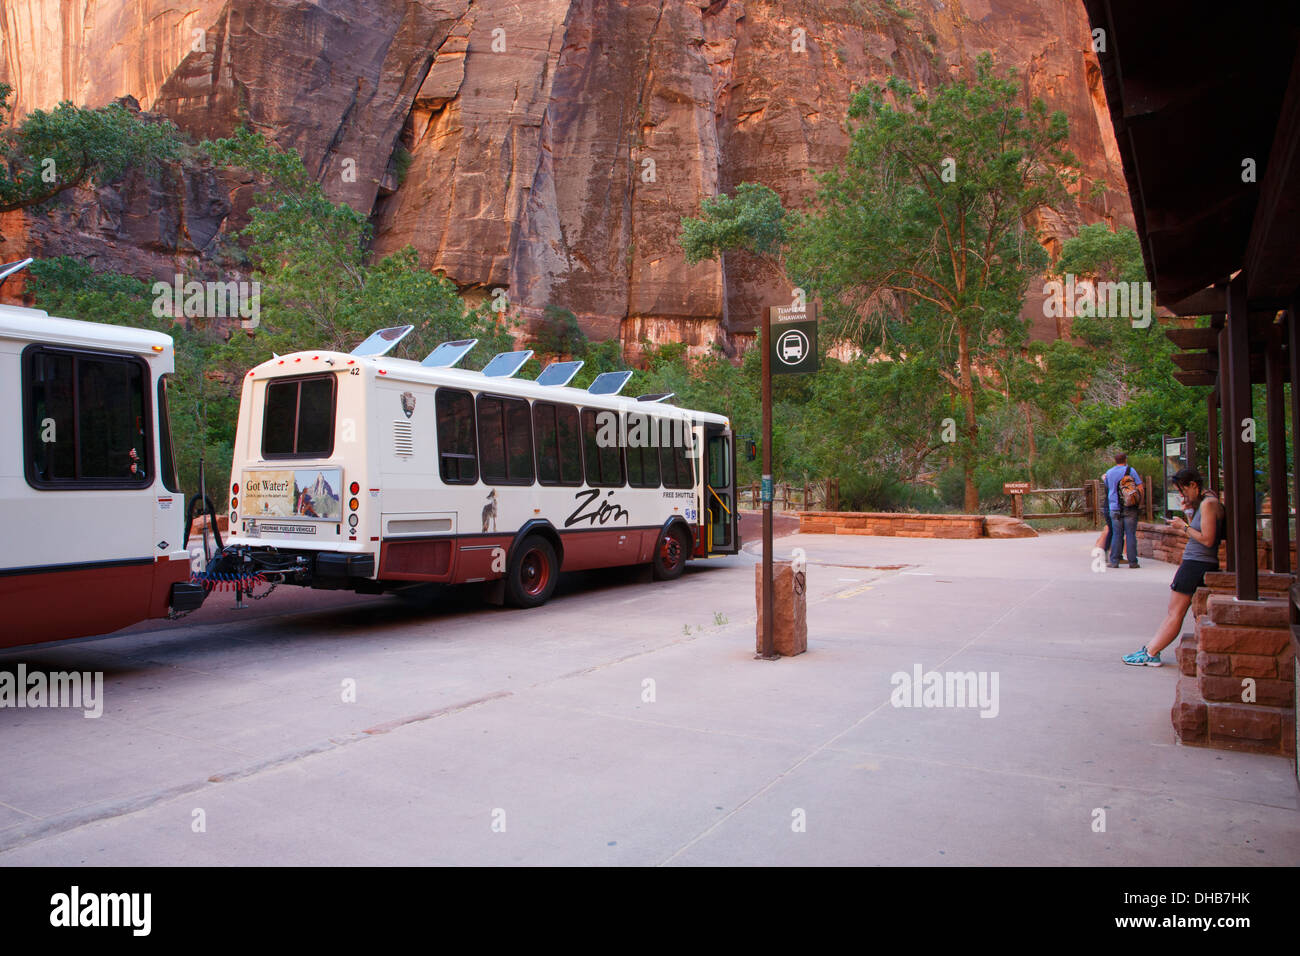 Shuttle bus at the Temple of the Sinawava, Zion National Park, Utah. - Stock Image